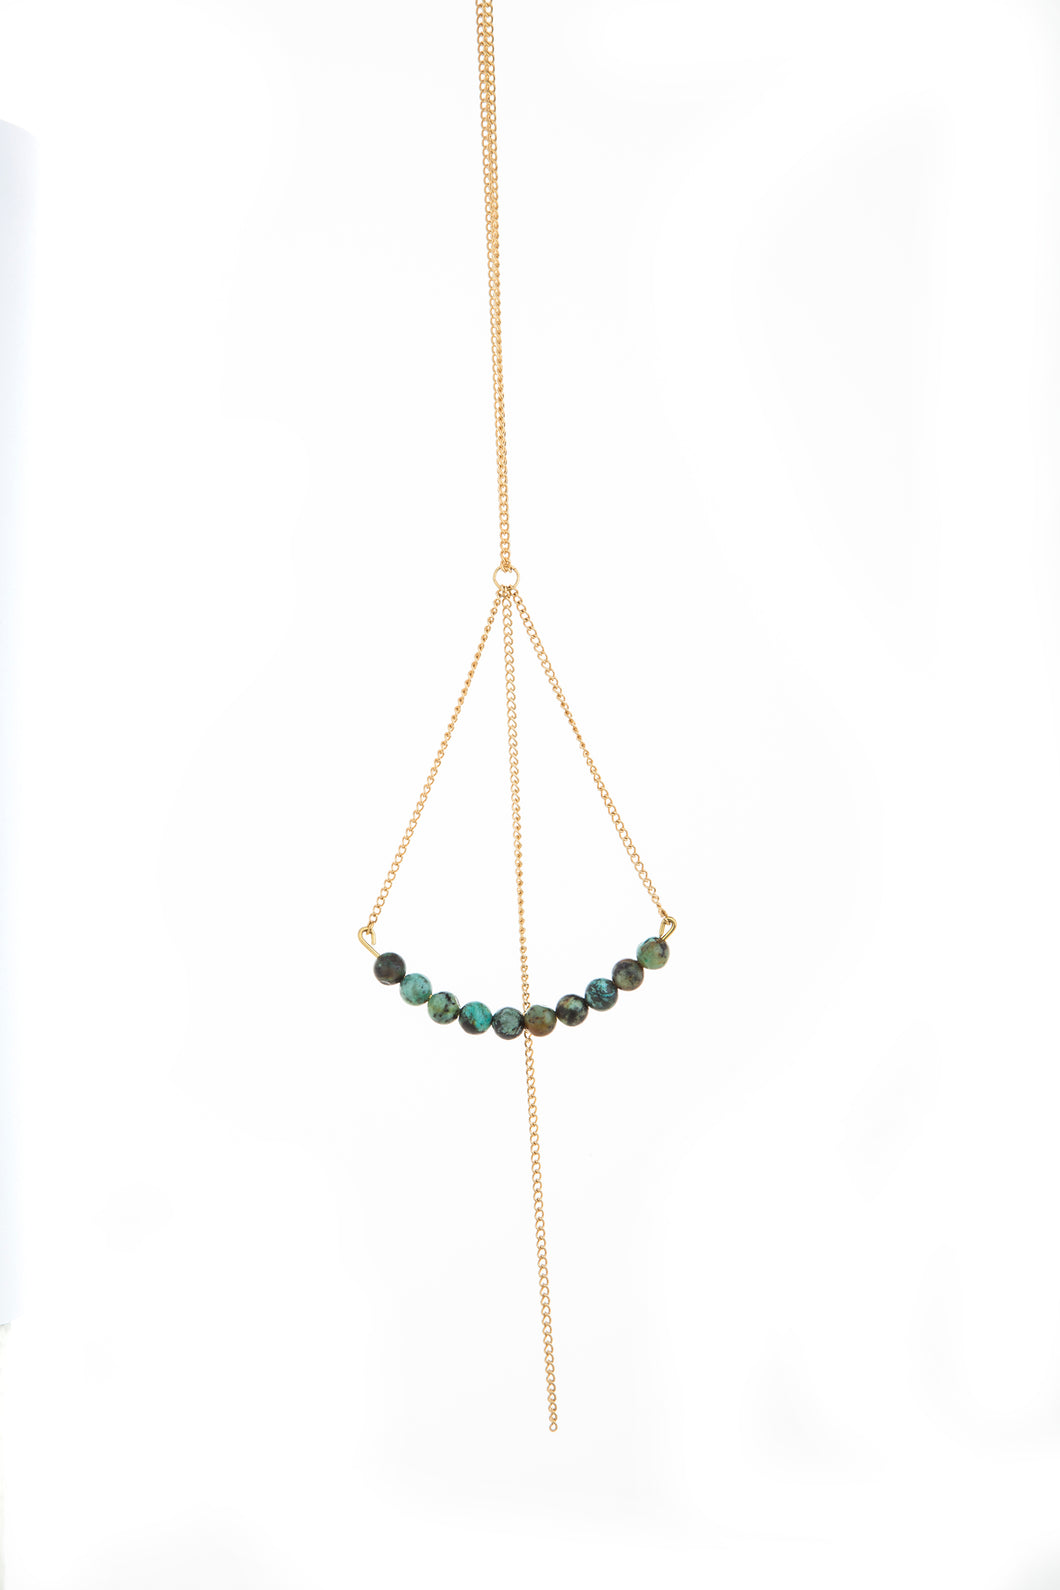 African Turquoise Rebel Necklace with Fringe